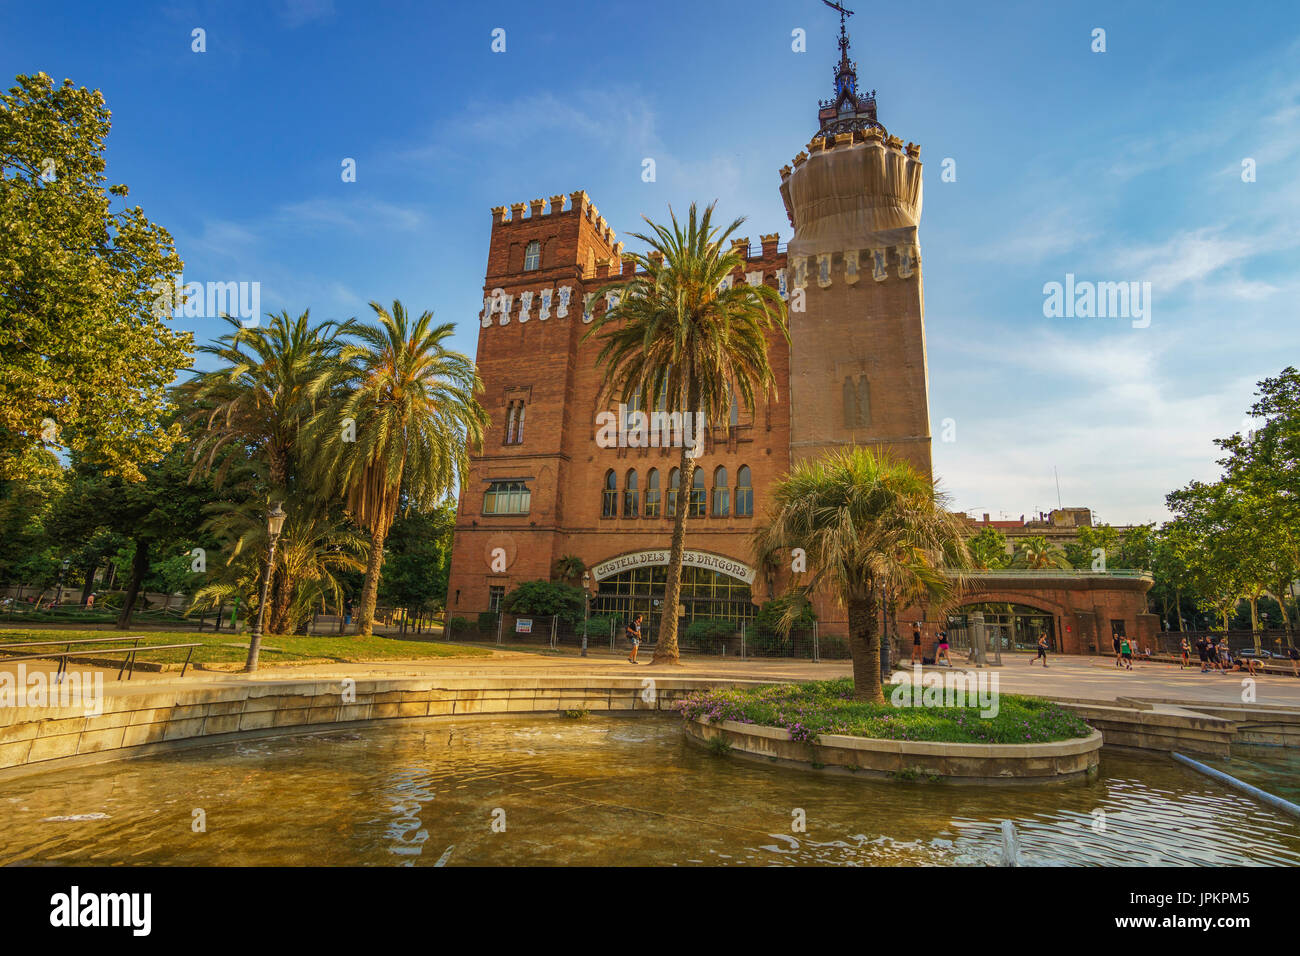 The Castle of the Three Dragons Castell dels Tres Dragons. The exhibition was used as a museum of history, archeology, biology and natural sciences. - Stock Image